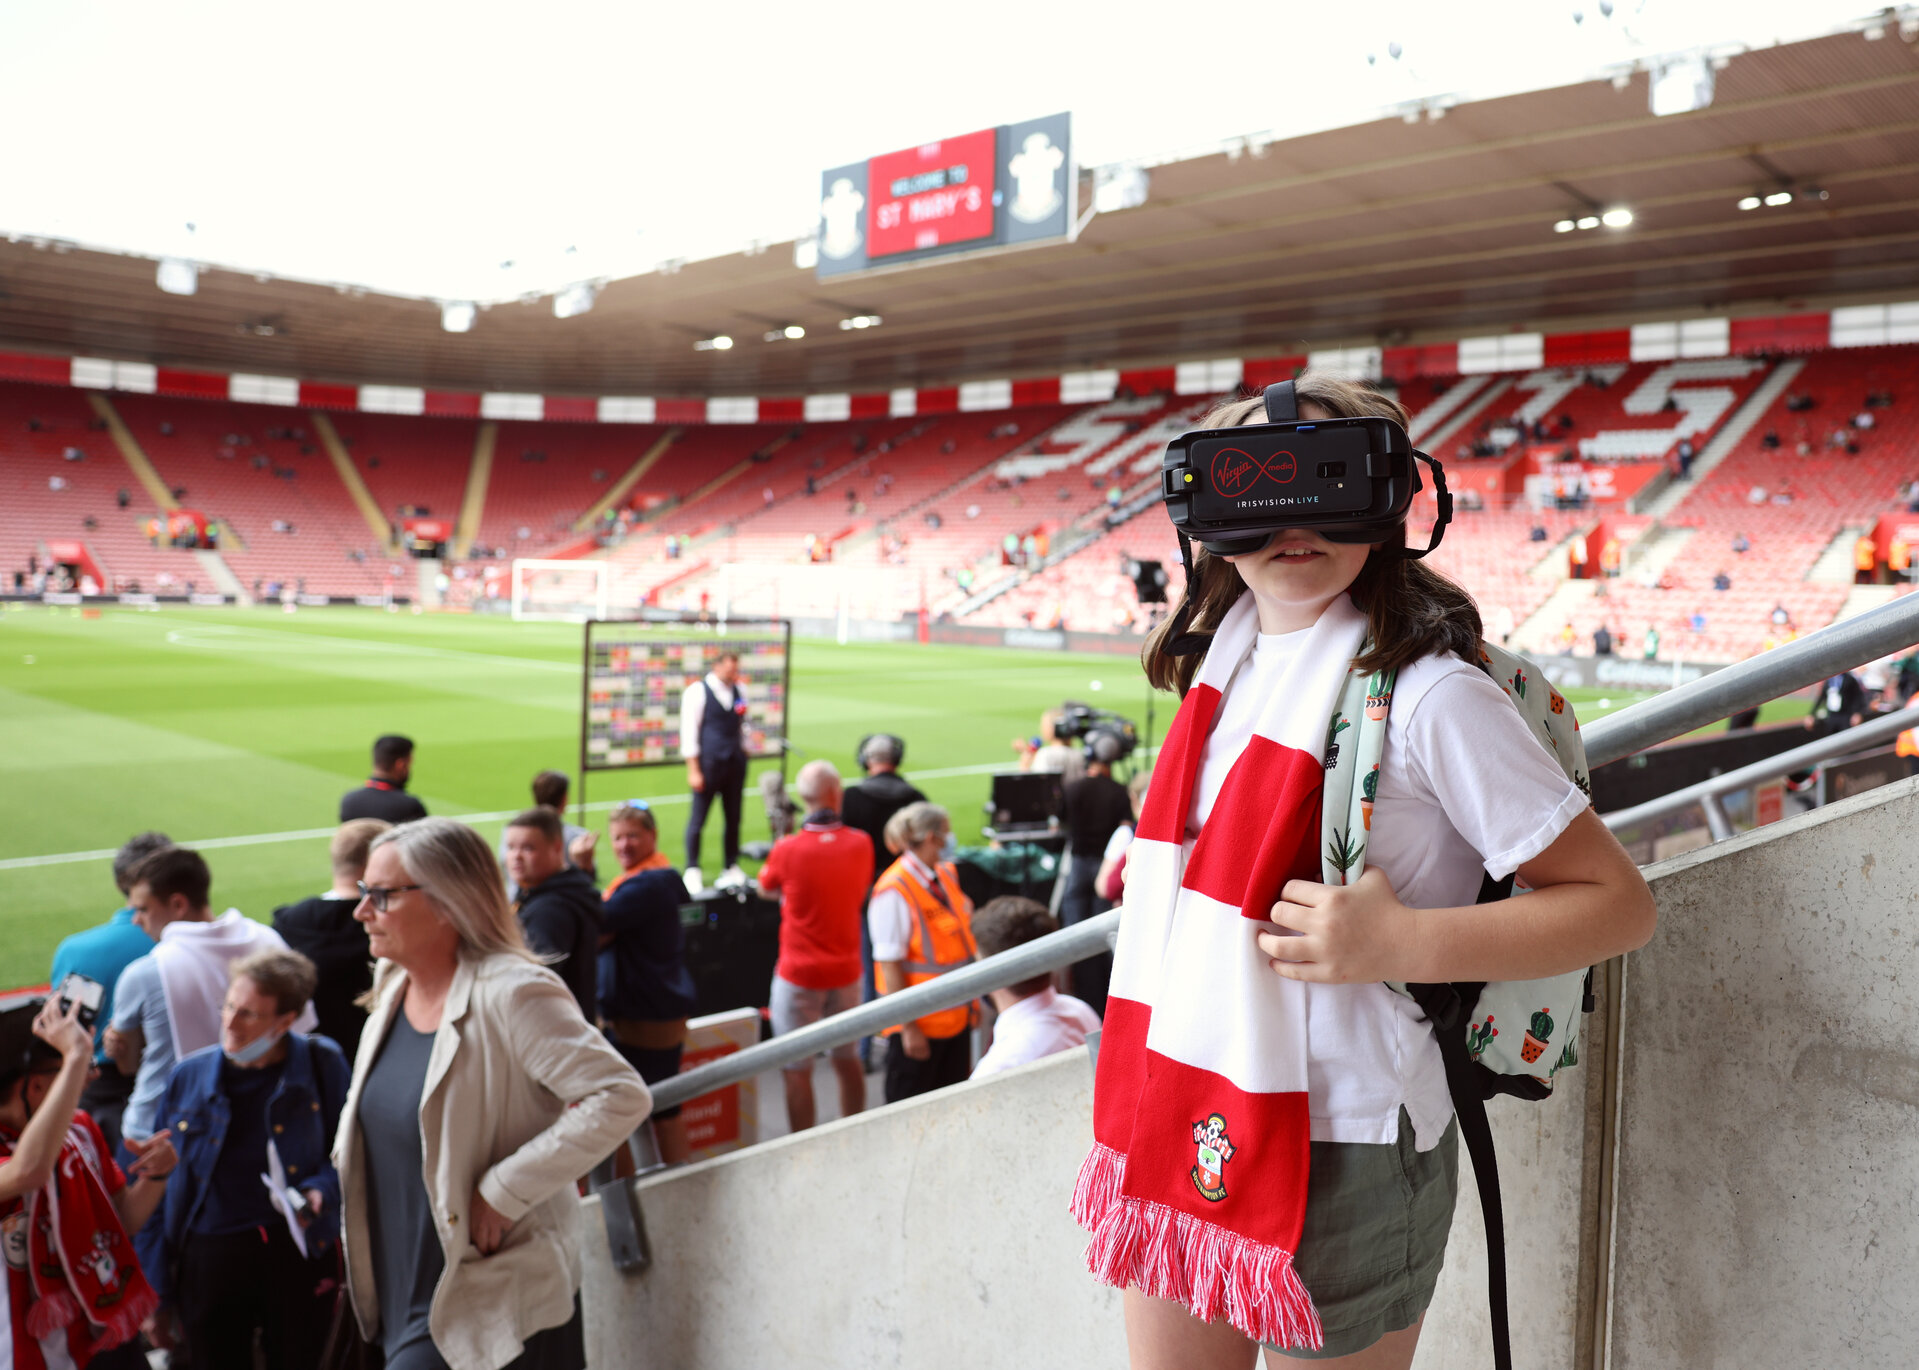 SOUTHAMPTON, ENGLAND - AUGUST 22, 2021:  Virgin Media, proud sponsor of Southampton FC, teamed up with the Premier League club and VisionAid to surprise Joshua (15 years old) and Florence (11 years old) with innovative technology at a special experience during the Southampton V Manchester United match at St Mary's Stadium on August 15, 2021 in Manchester, England.